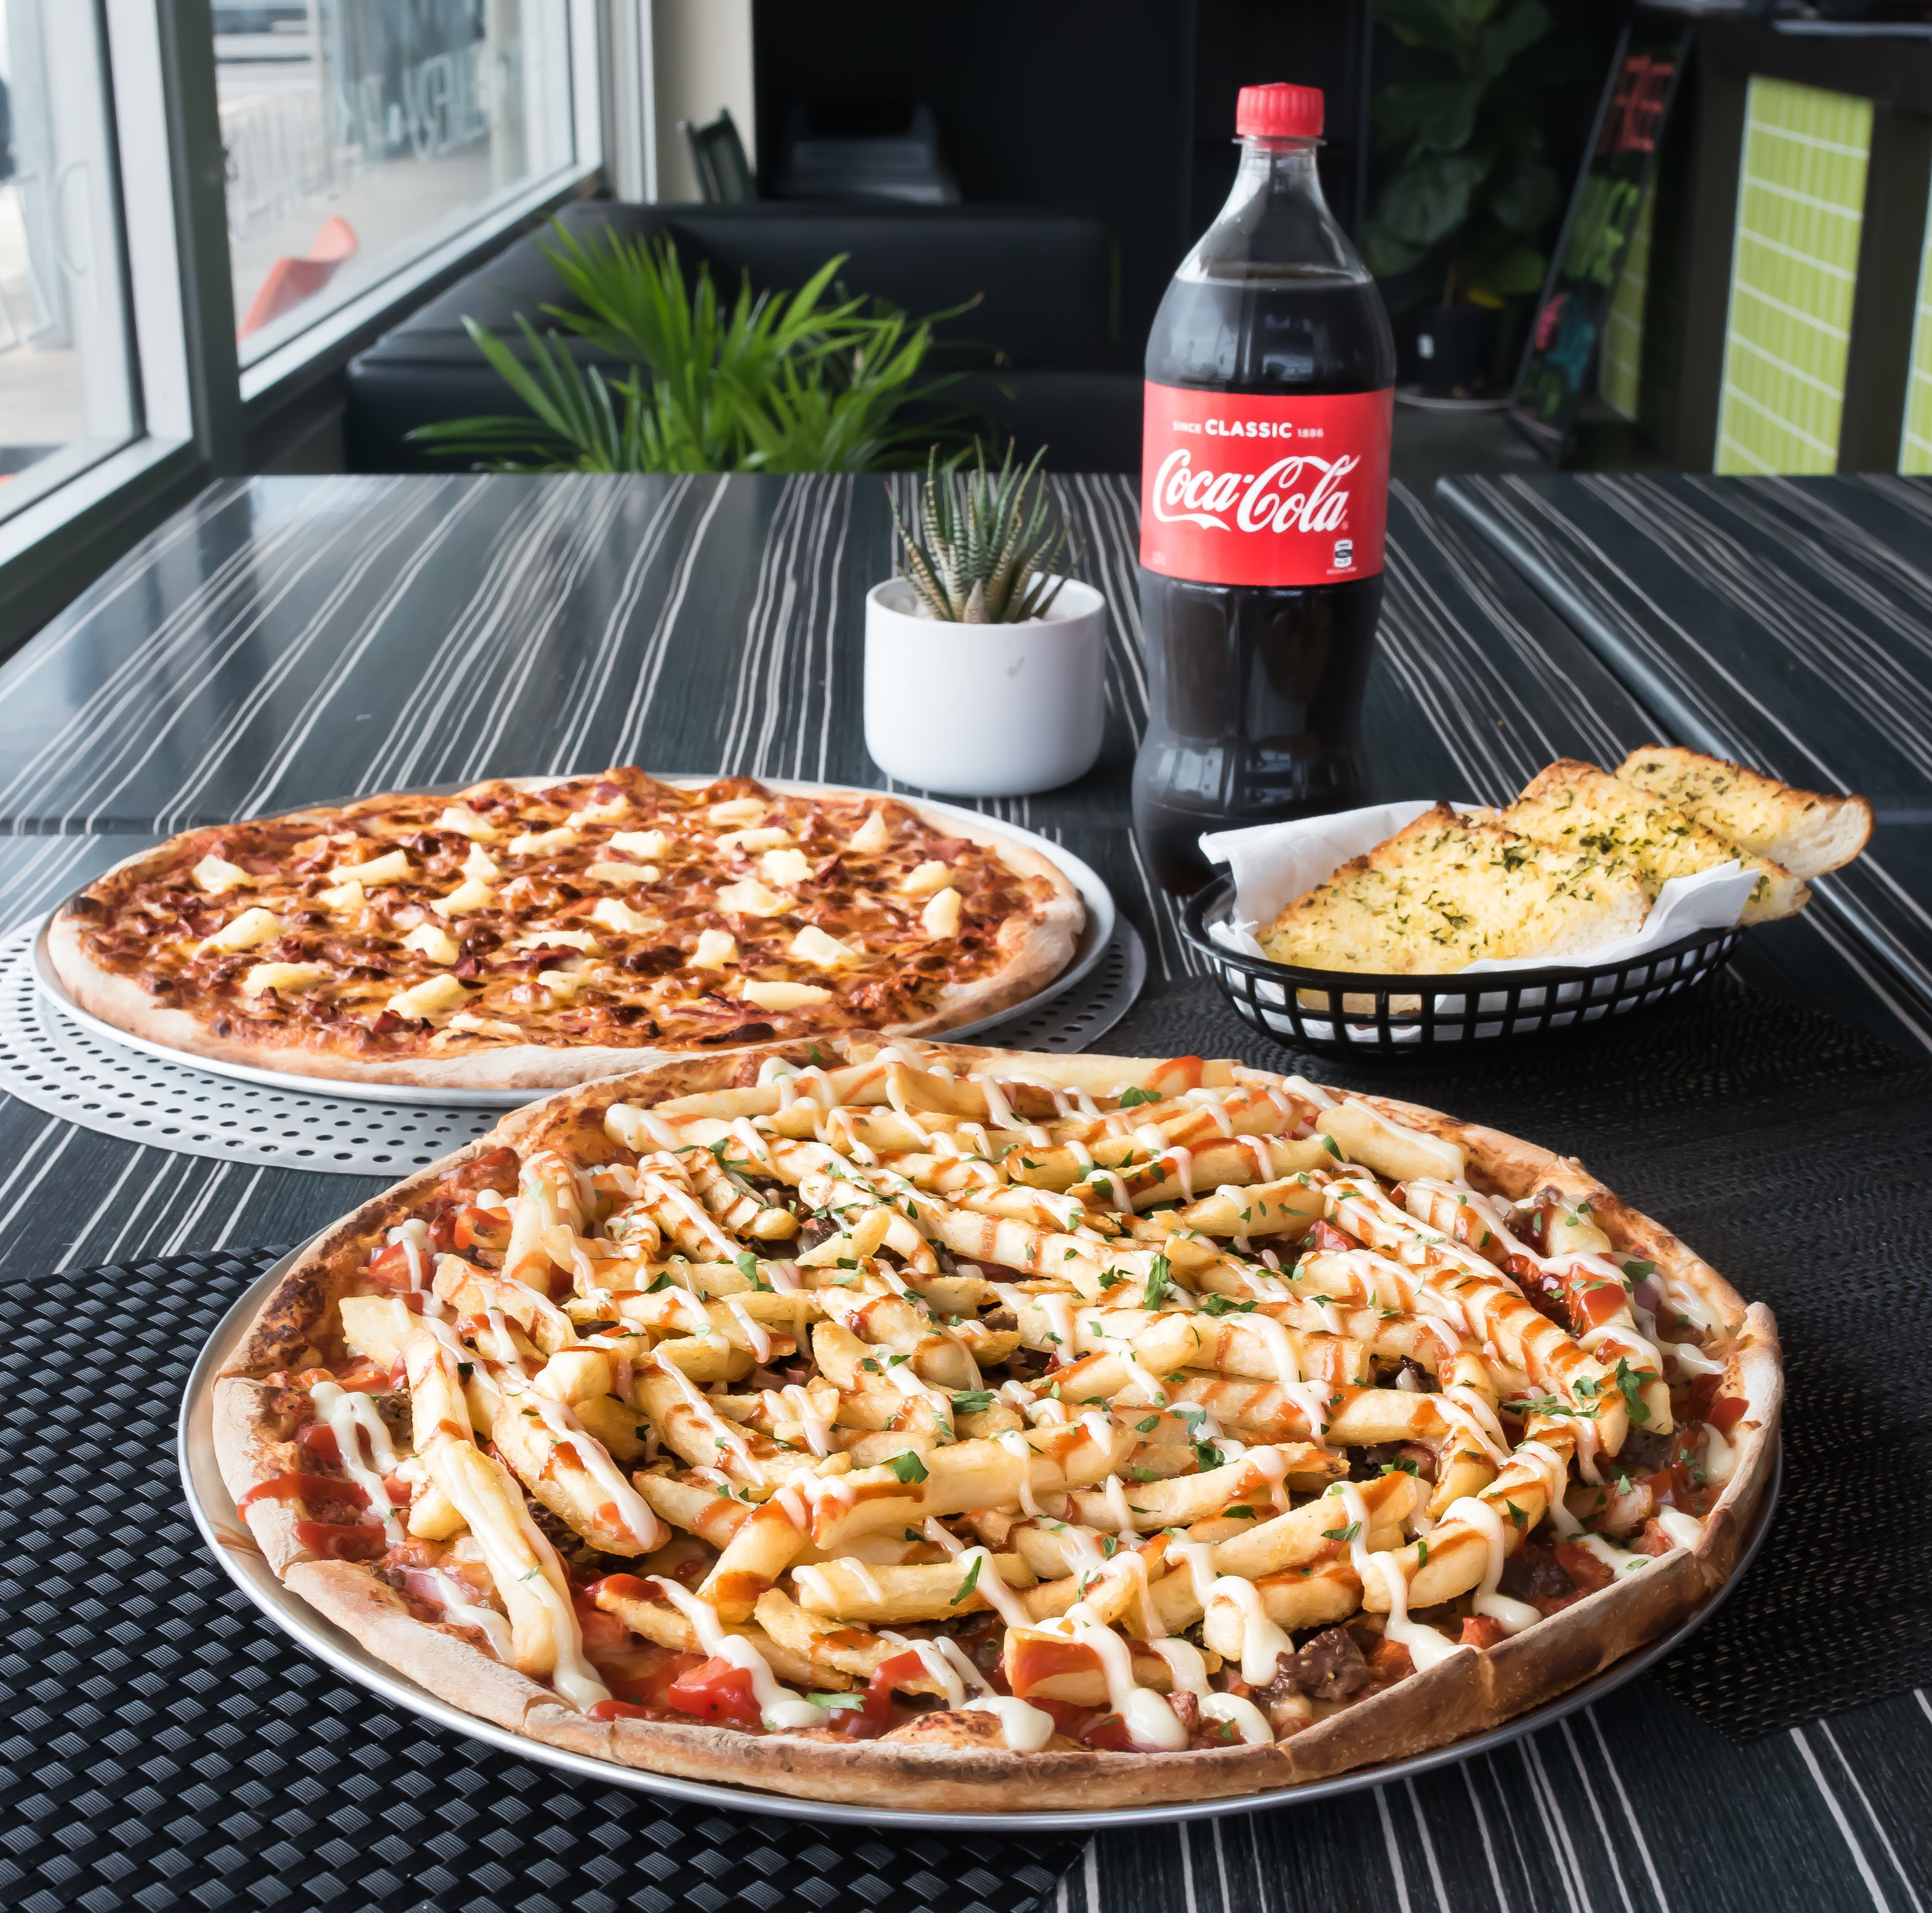 Order any 2 Family Pizzas plus a Garlic Bread...get a free drink!